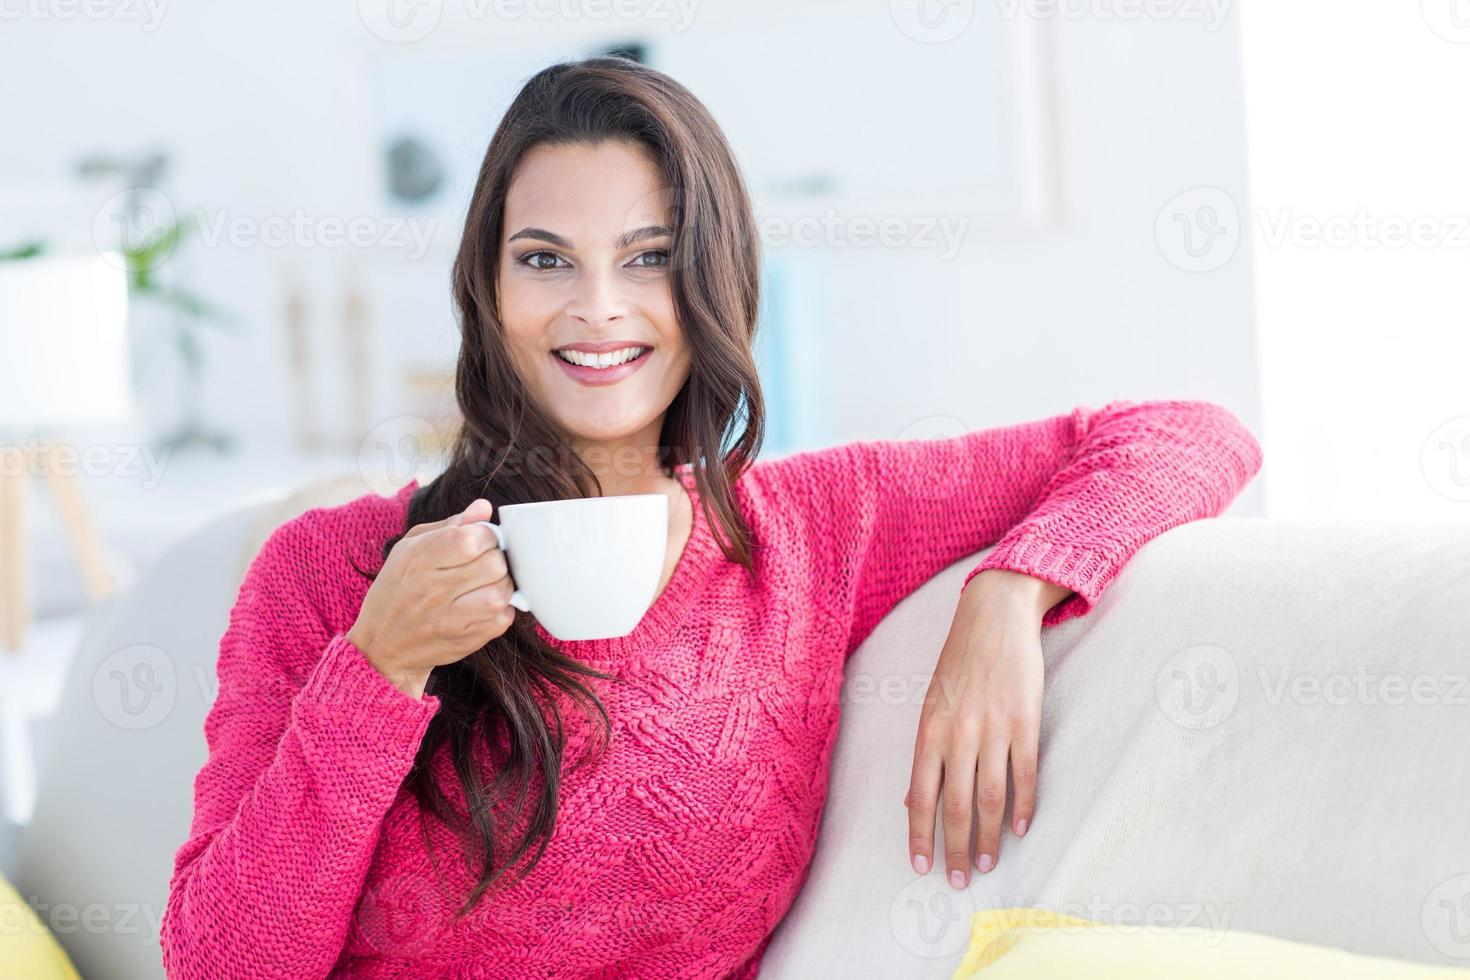 Smiling beautiful brunette relaxing on the couch and holding mug photo